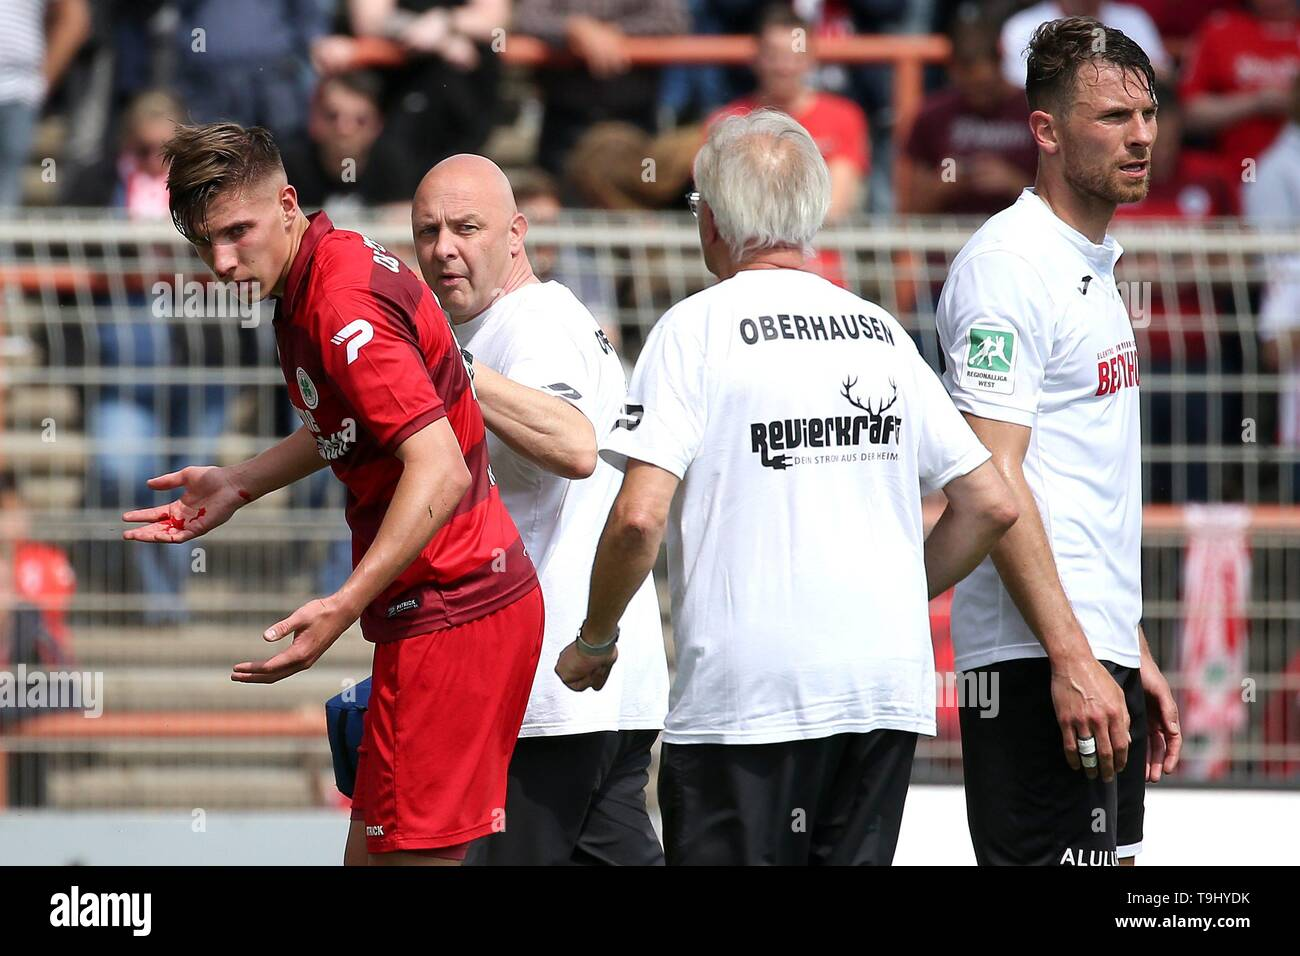 Oberhausen, Germany. 18th May, 2019. firo: 18.05.2019 Football, Regionalliga West, season 2018/2019 Rot-Weiss Oberhausen - SC Verl Mike Jordan (# 4, Red-Weiss Oberhausen) walks with bloody nose from the square. | usage worldwide Credit: dpa/Alamy Live News - Stock Image